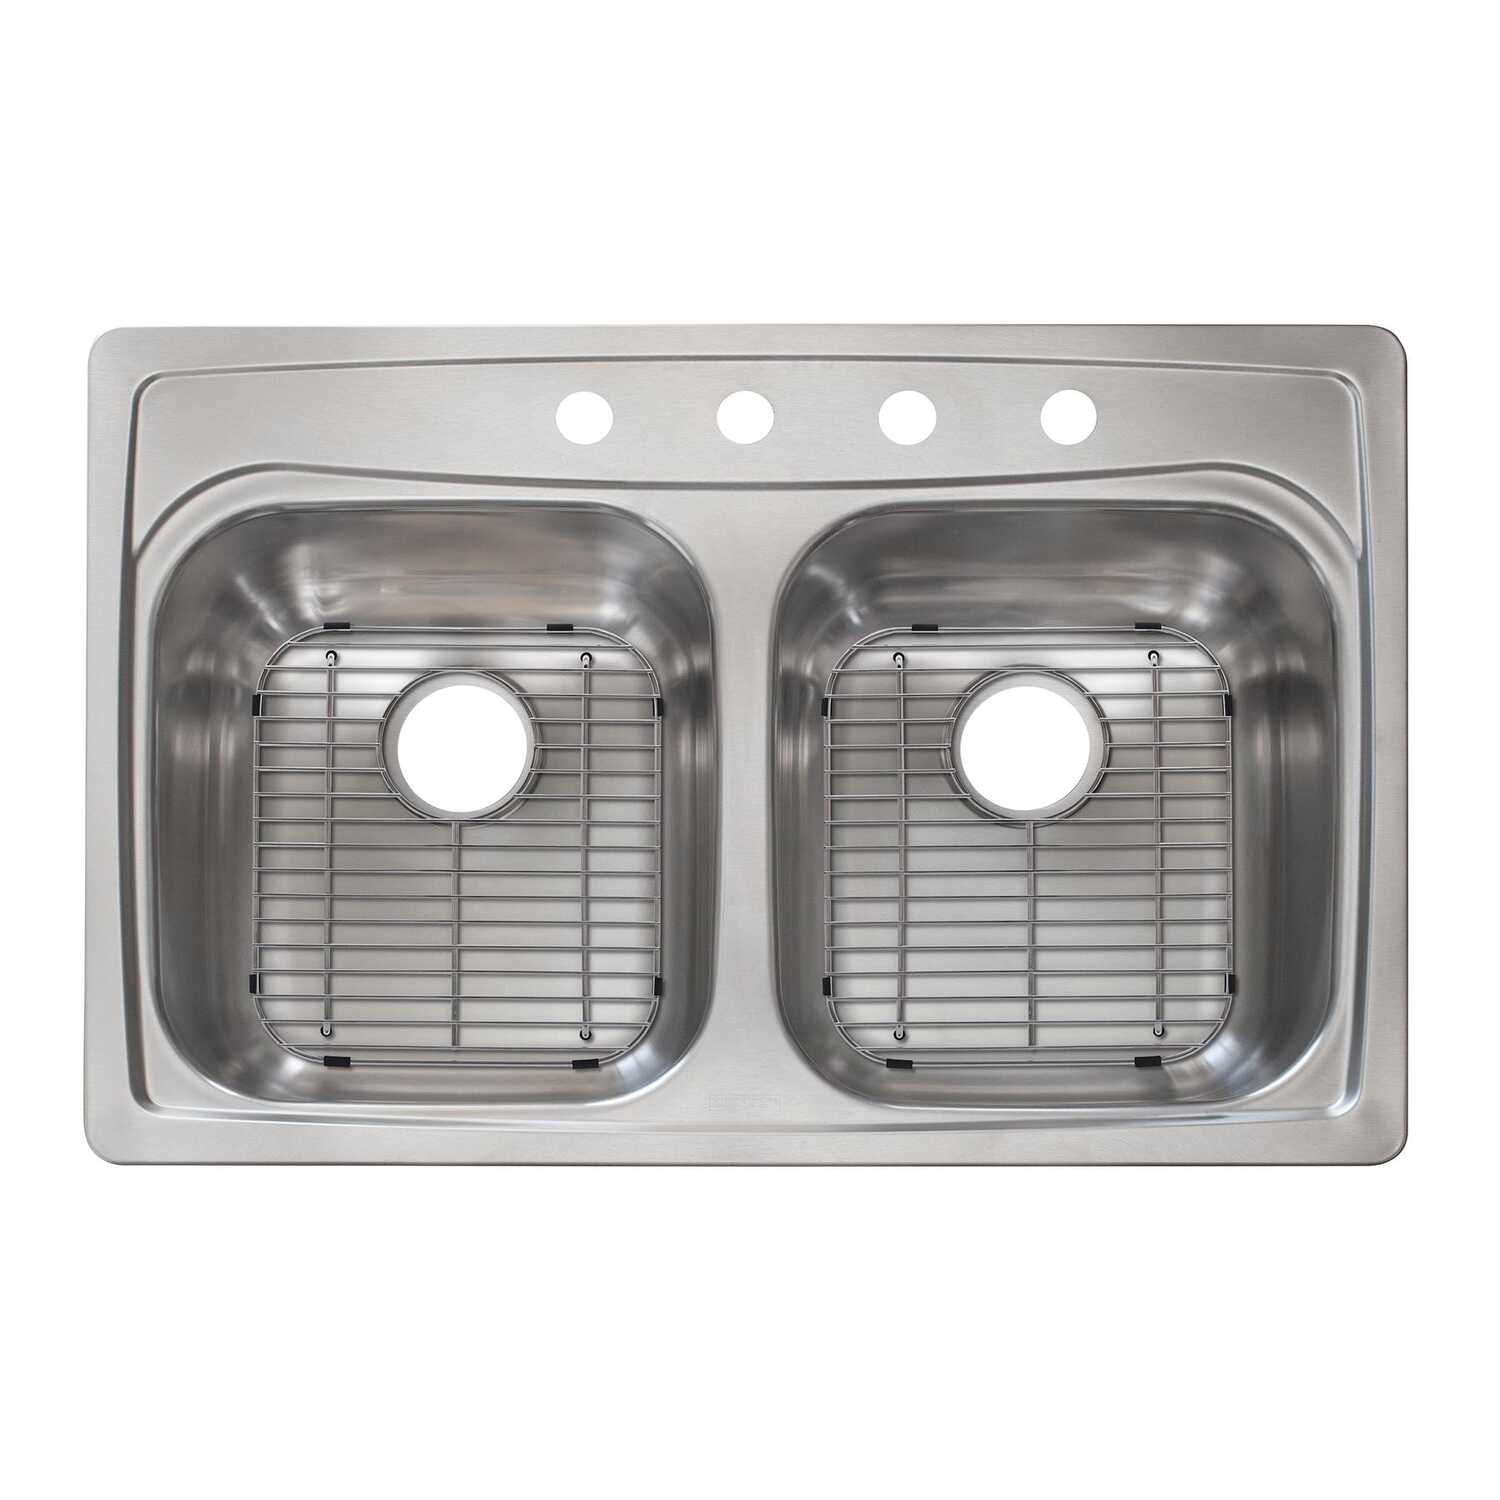 Franke  Stainless Steel  Top Mount  33 in. W x 22 in. L Kitchen Sink